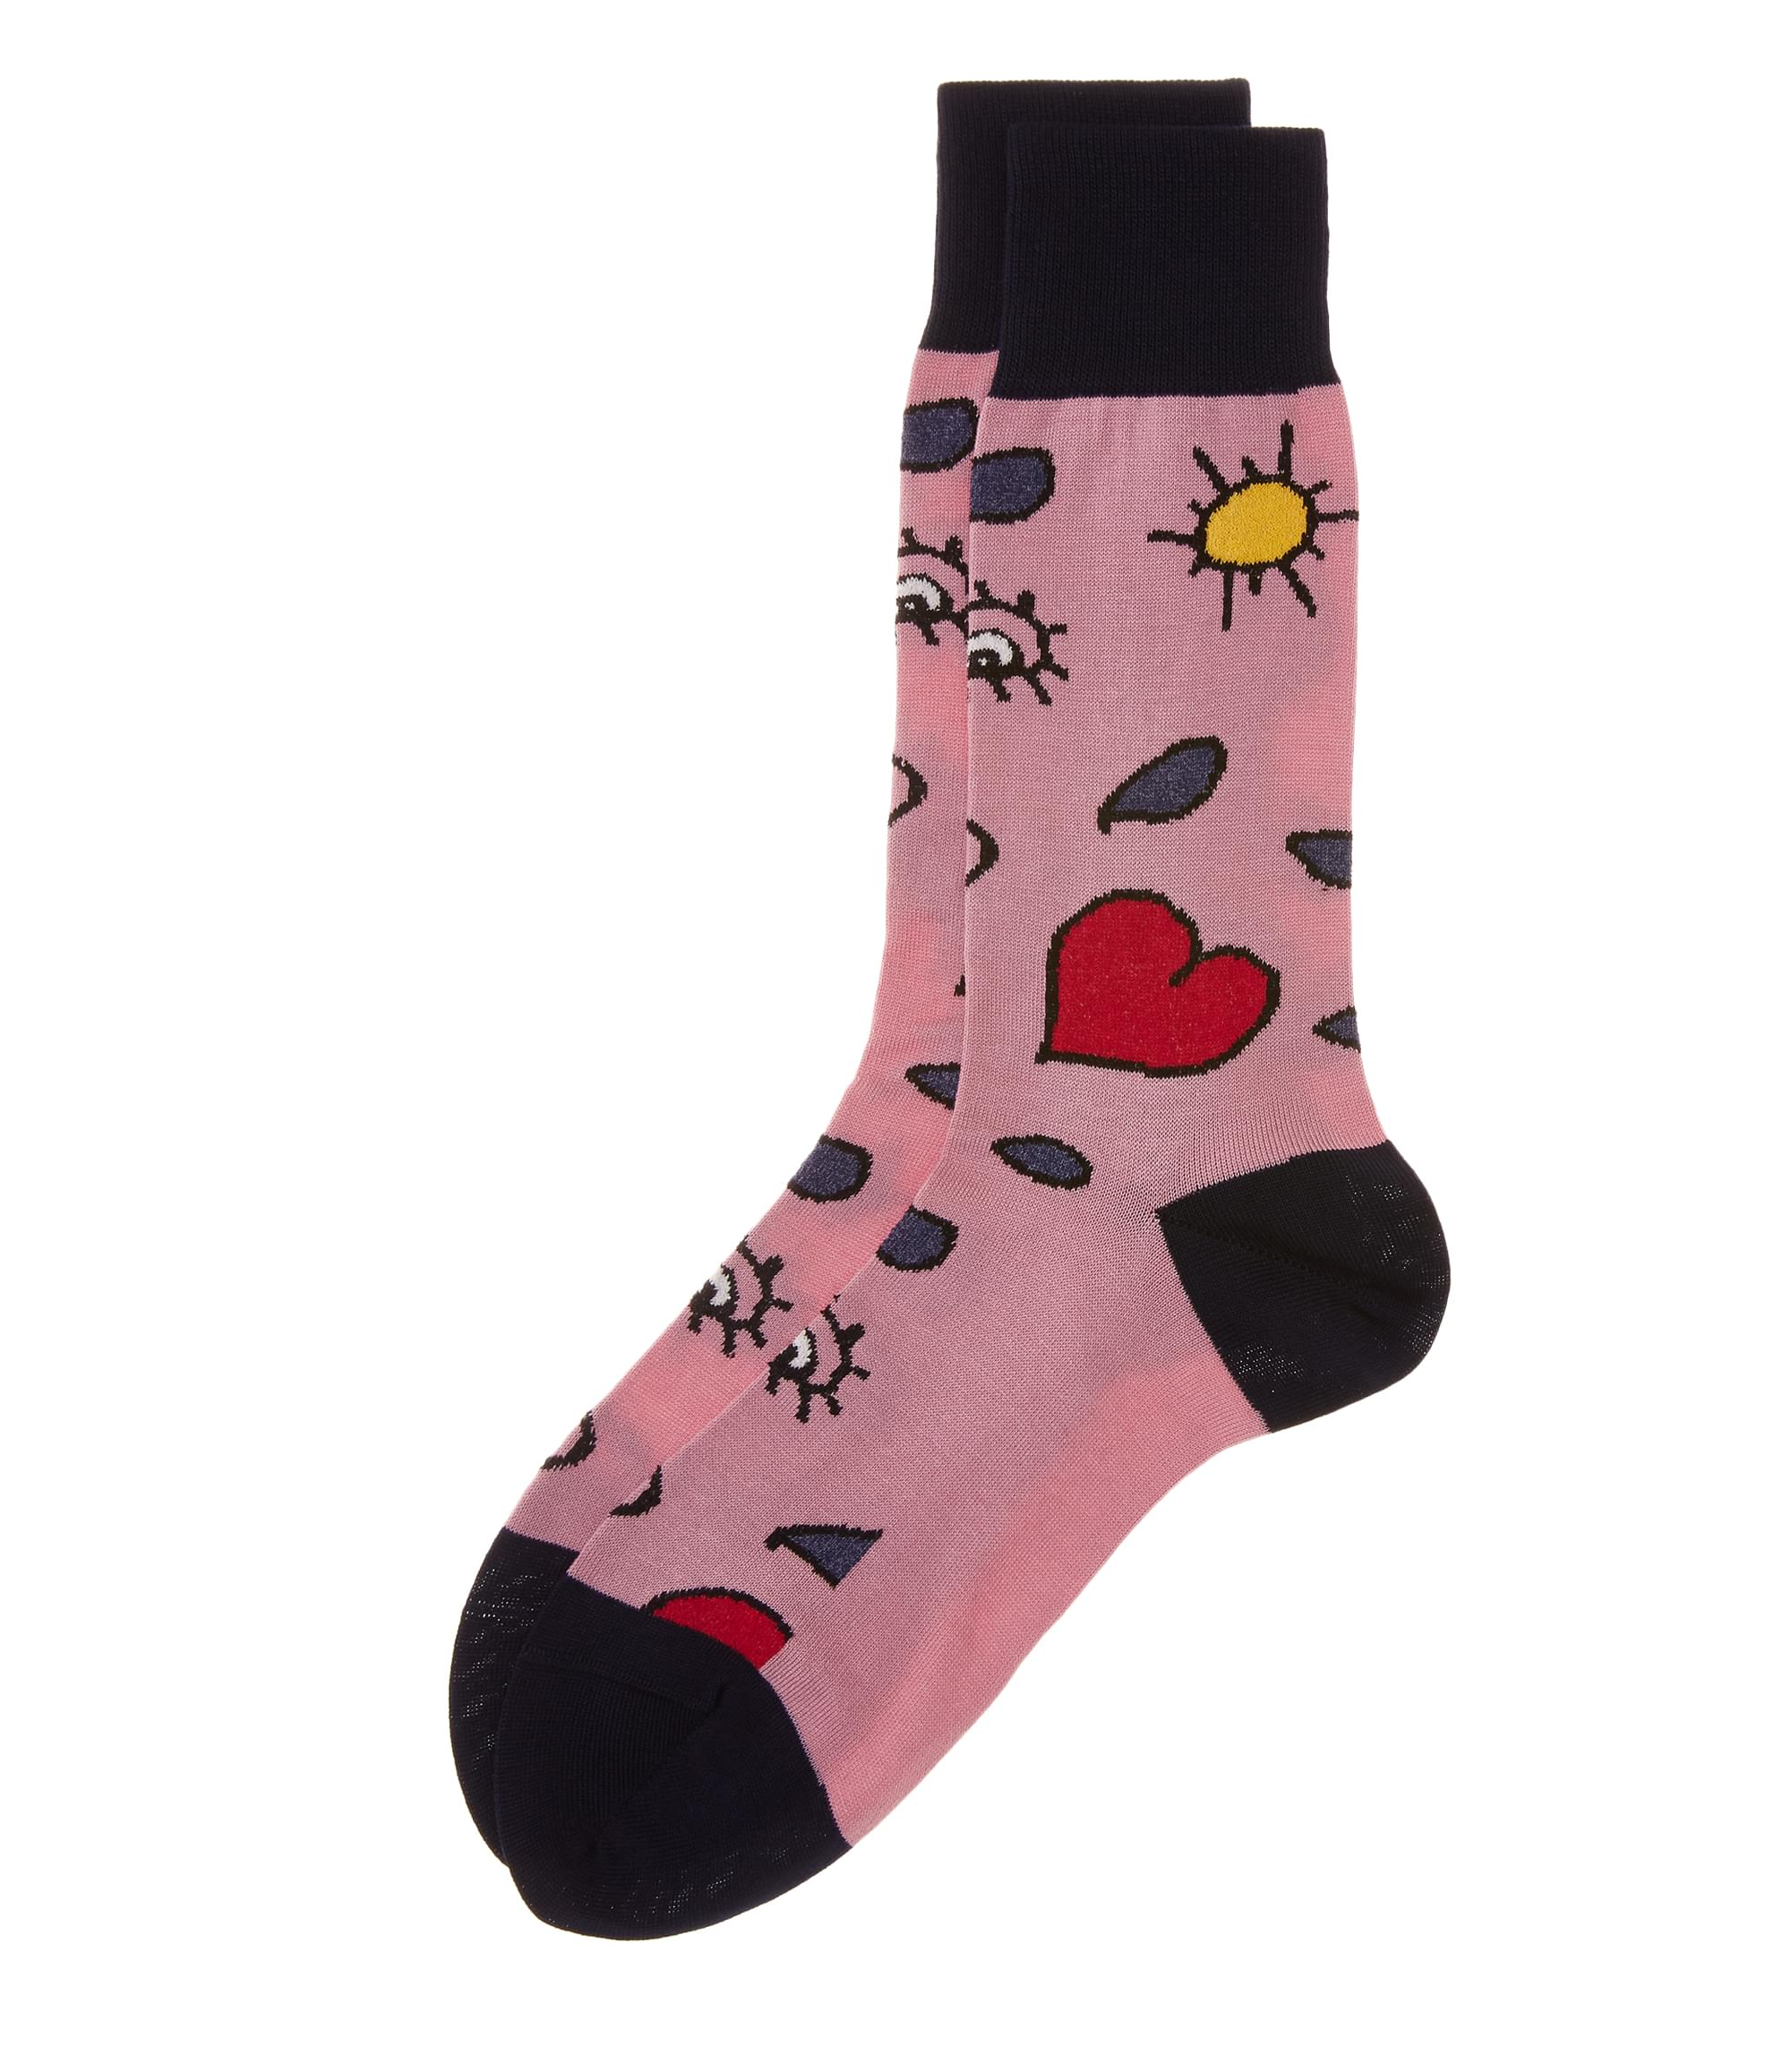 Vivienne Westwood Pink Heart and Eye Socks